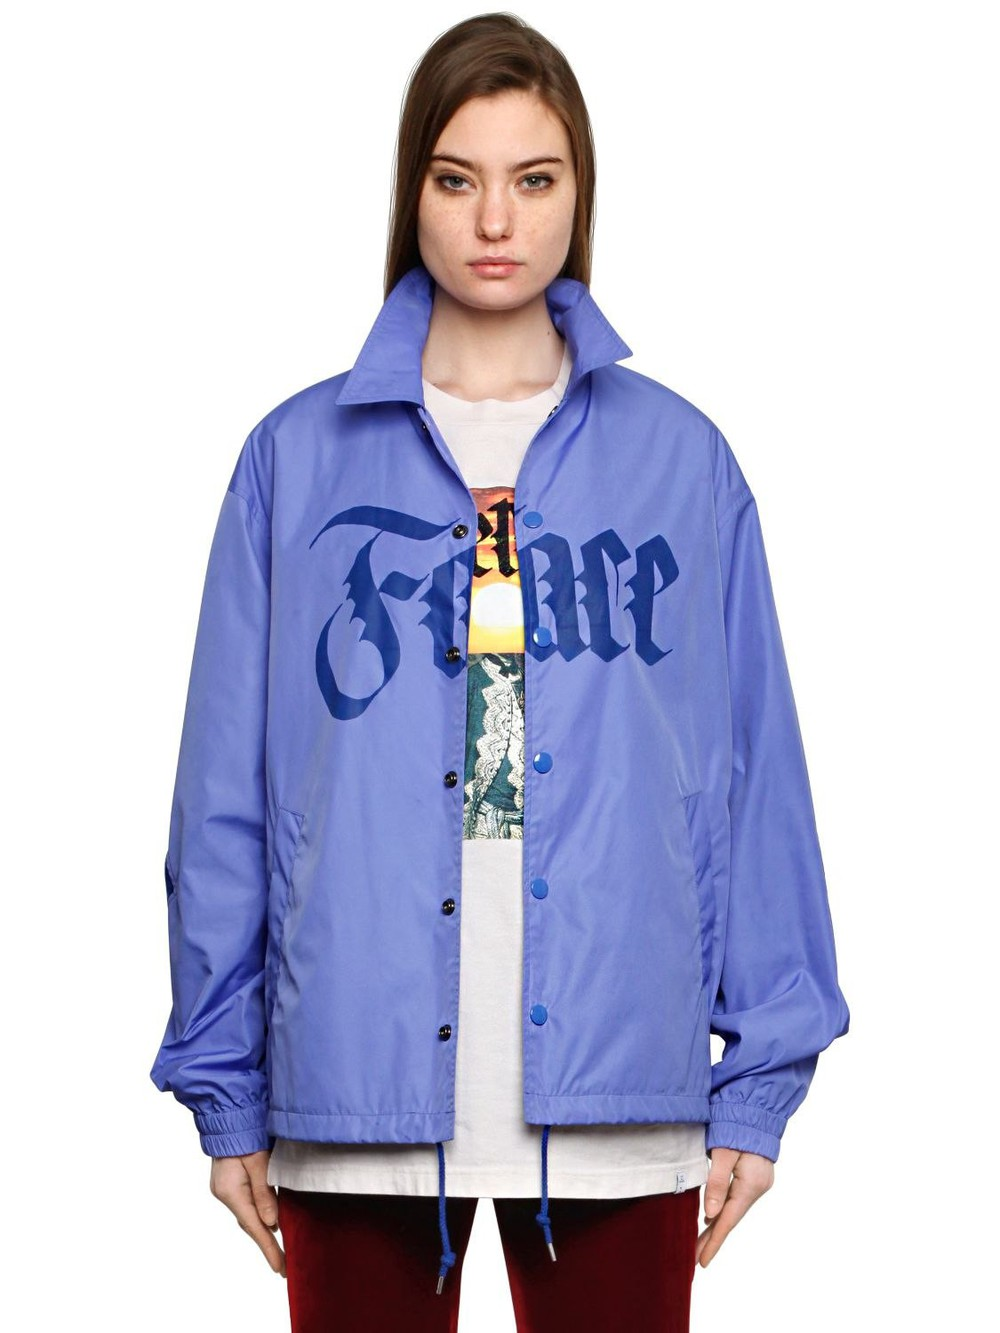 FACETASM Printed Bomber Jacket W/ Striped Inserts in blue